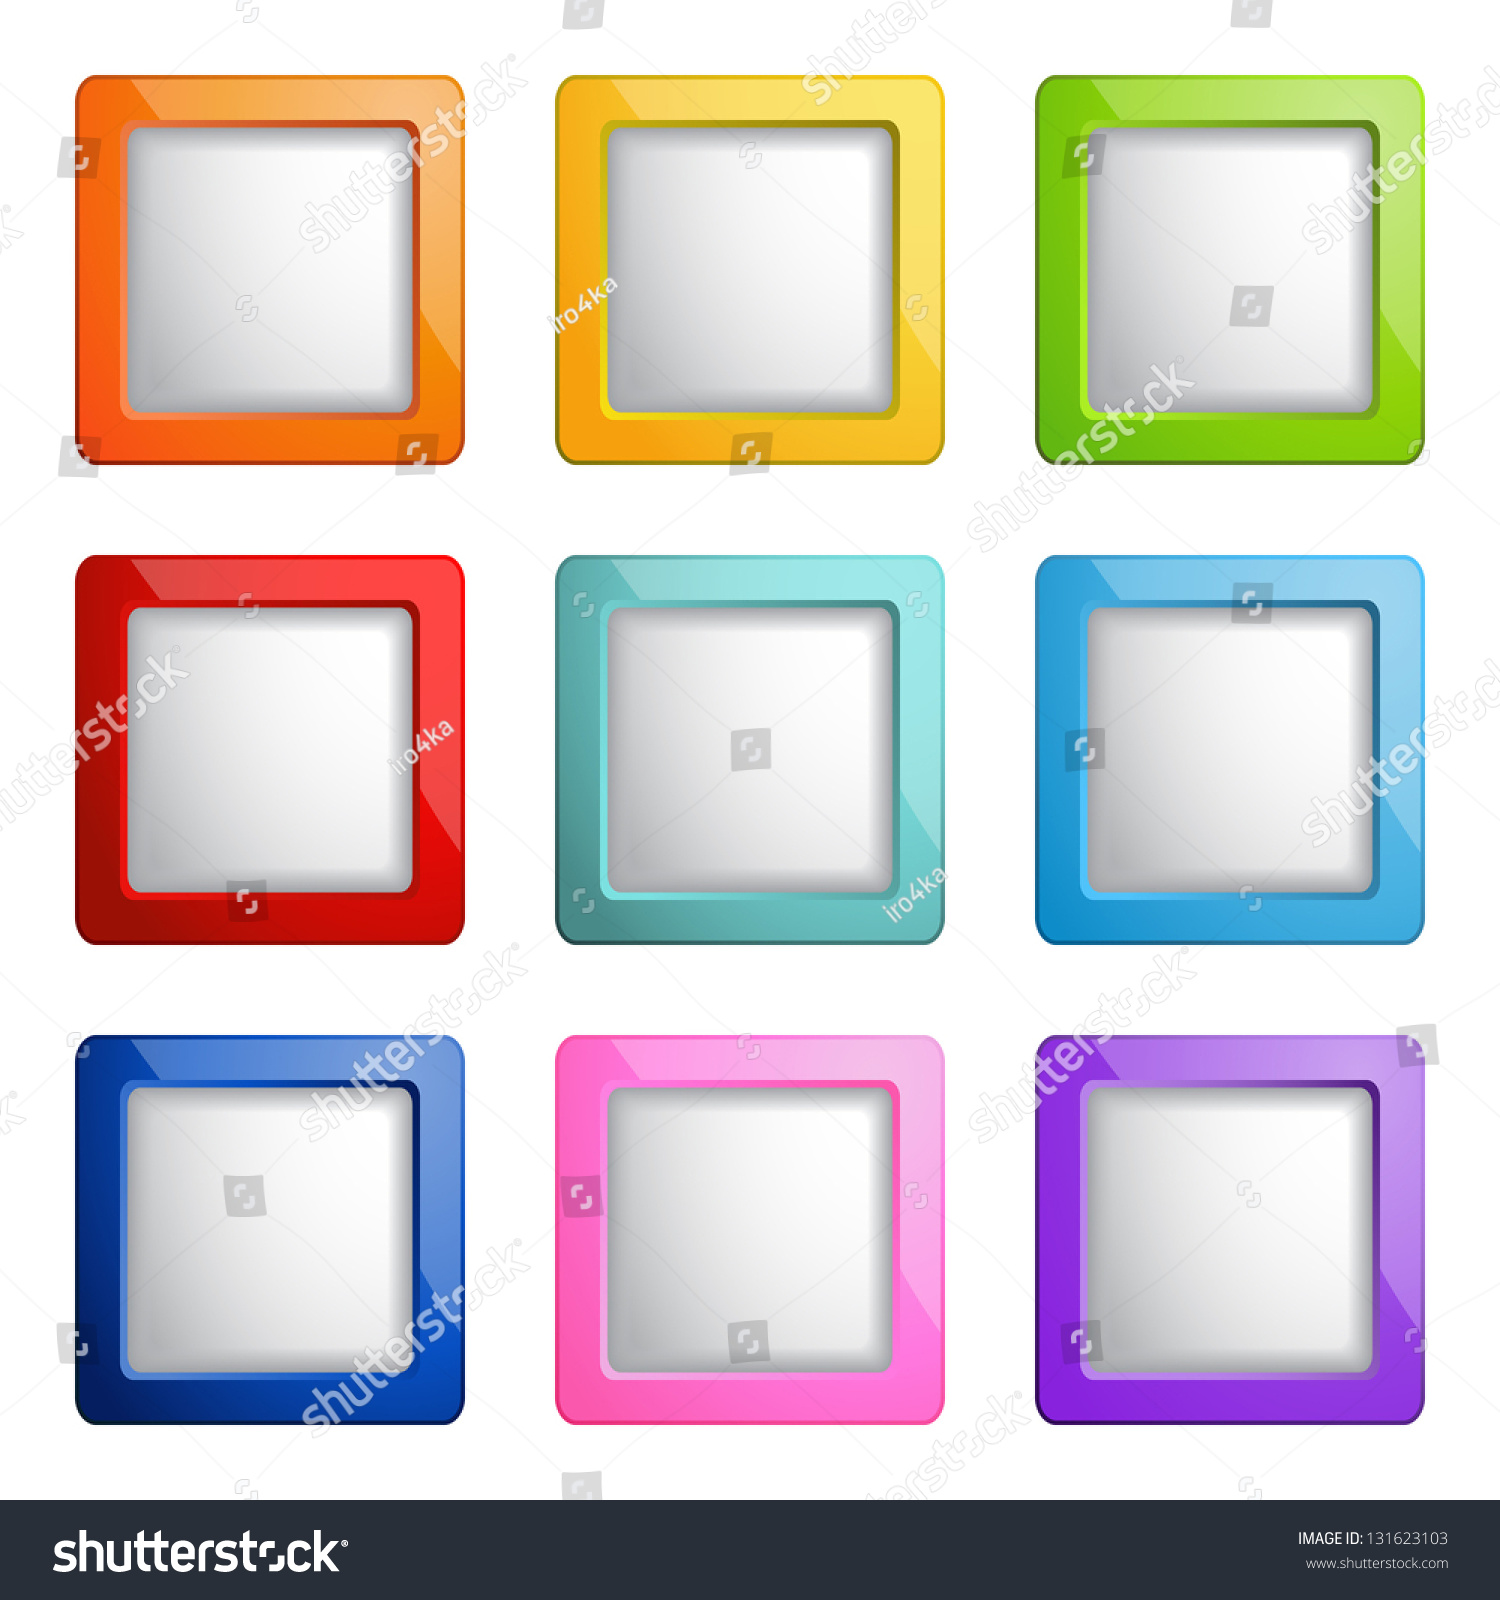 Email Icon Isolated On Special Yellow Square Button Abstract Set Square Web Buttons Stock Vector 131623103 Shutterstock